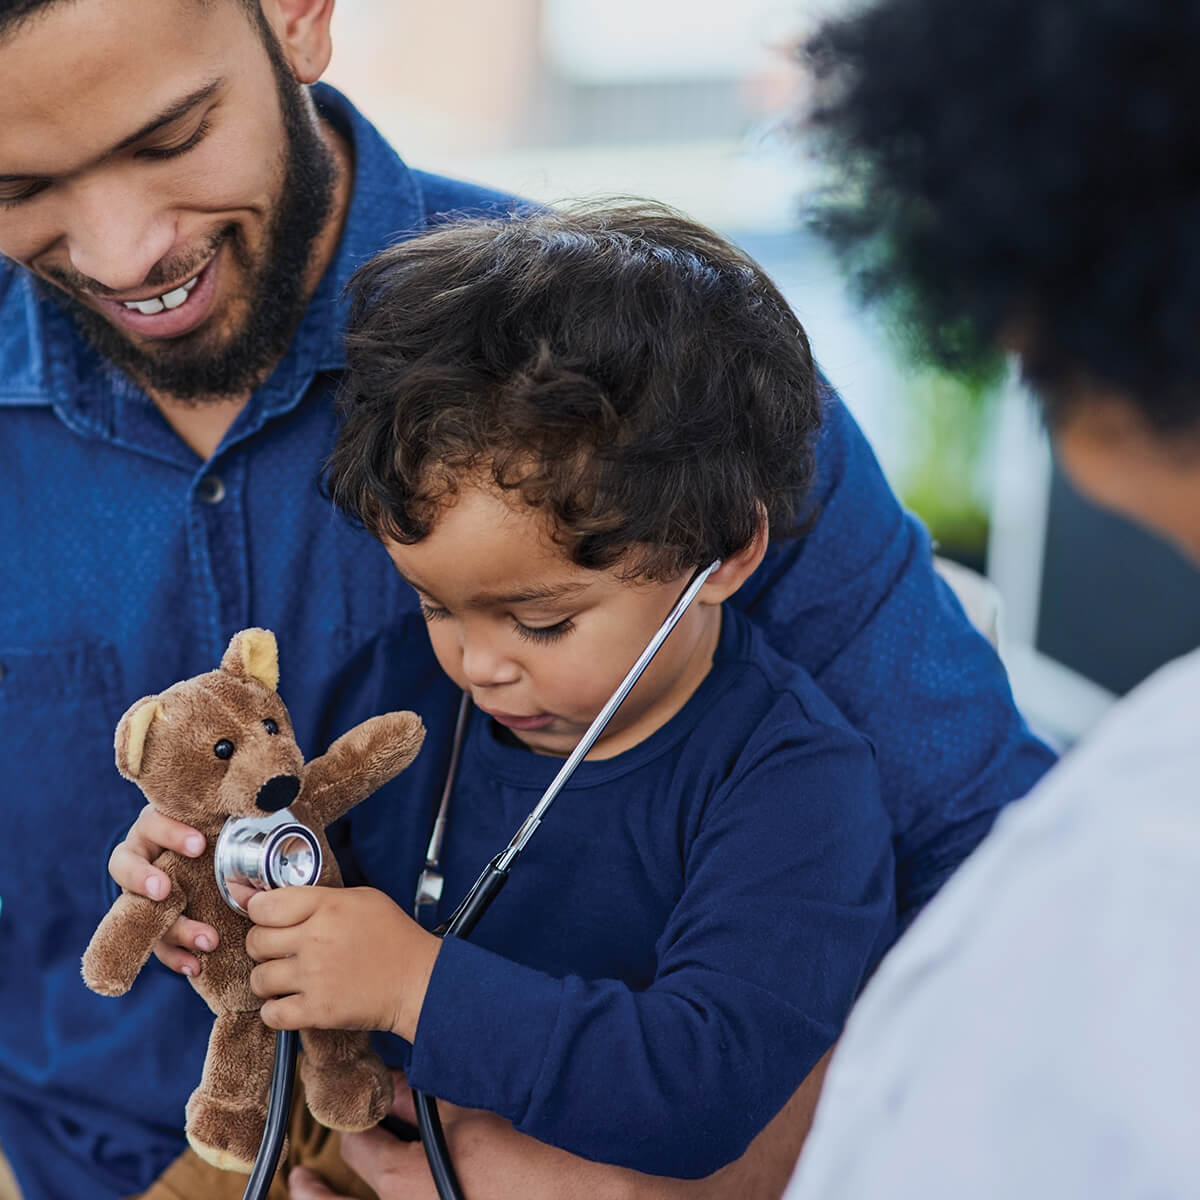 A father sitting with his son at the doctor's office, while the son tries to listen to a teddy bear's chest with a stethoscope